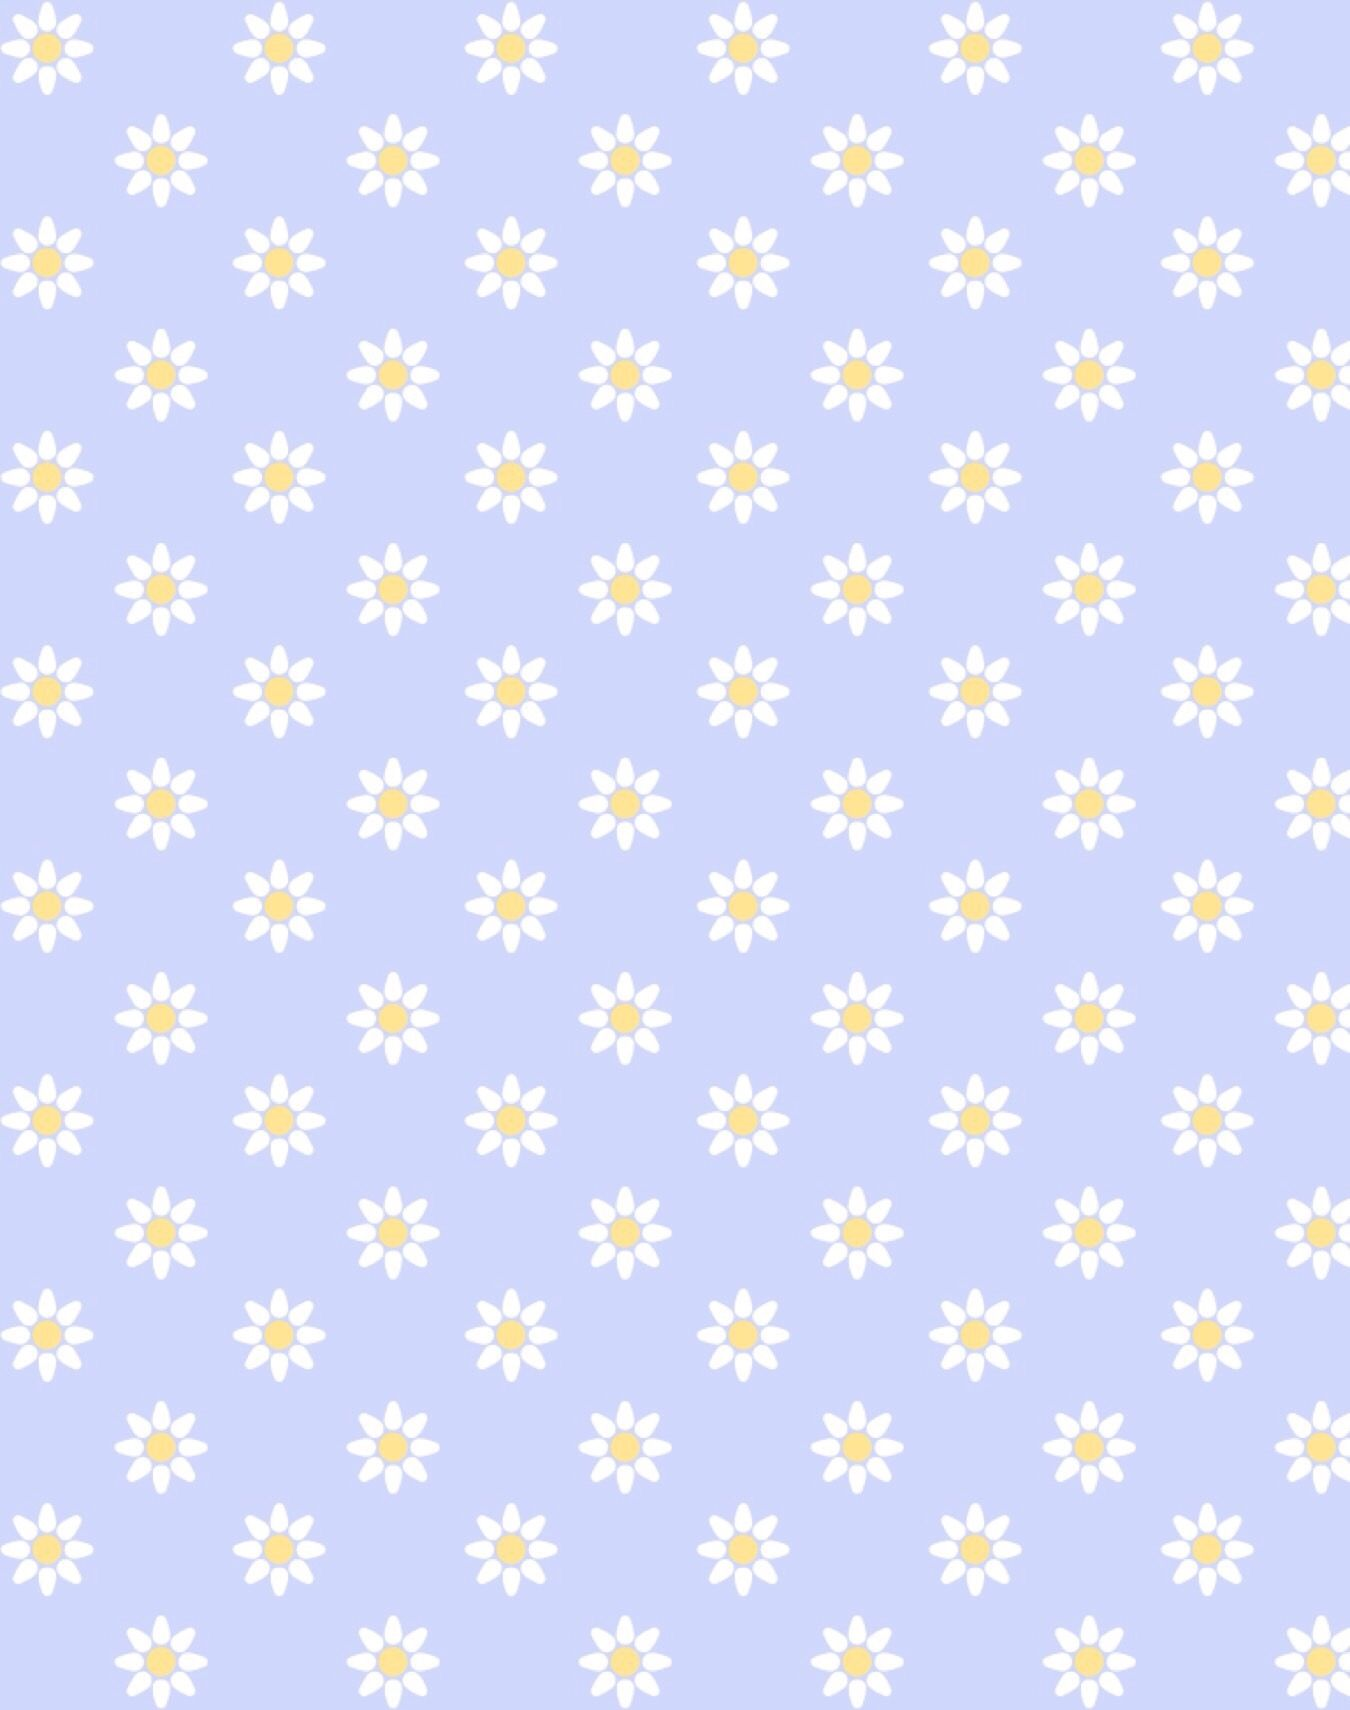 Cute Daisy Background Got It From Pic Collage Cute Wallpapers Daisy Background Paper Background